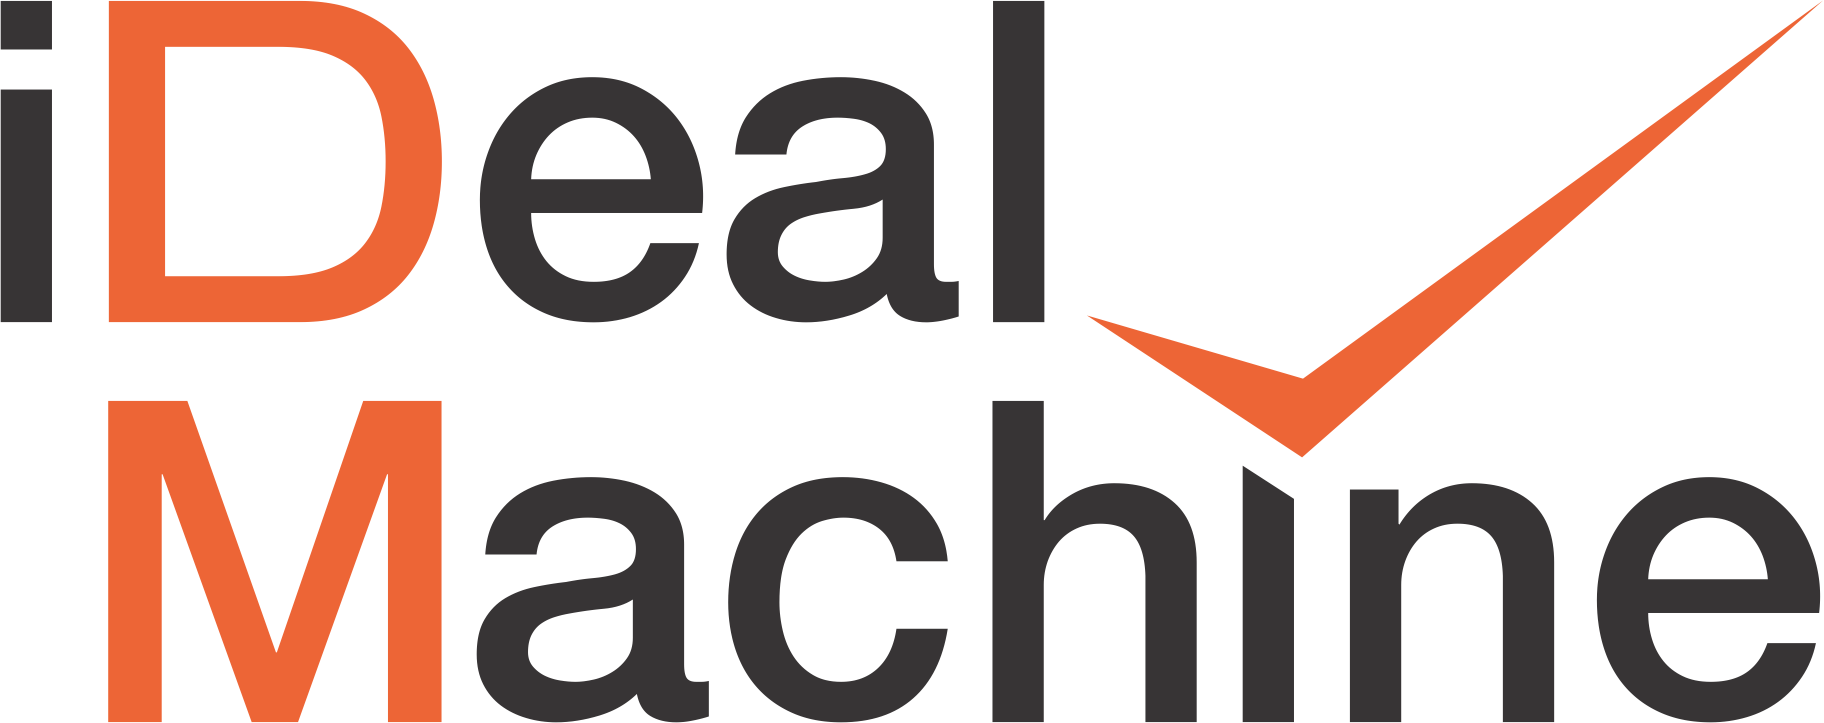 GoTech contest nominees will receive grants for participation in iDealMachine USA Landing program